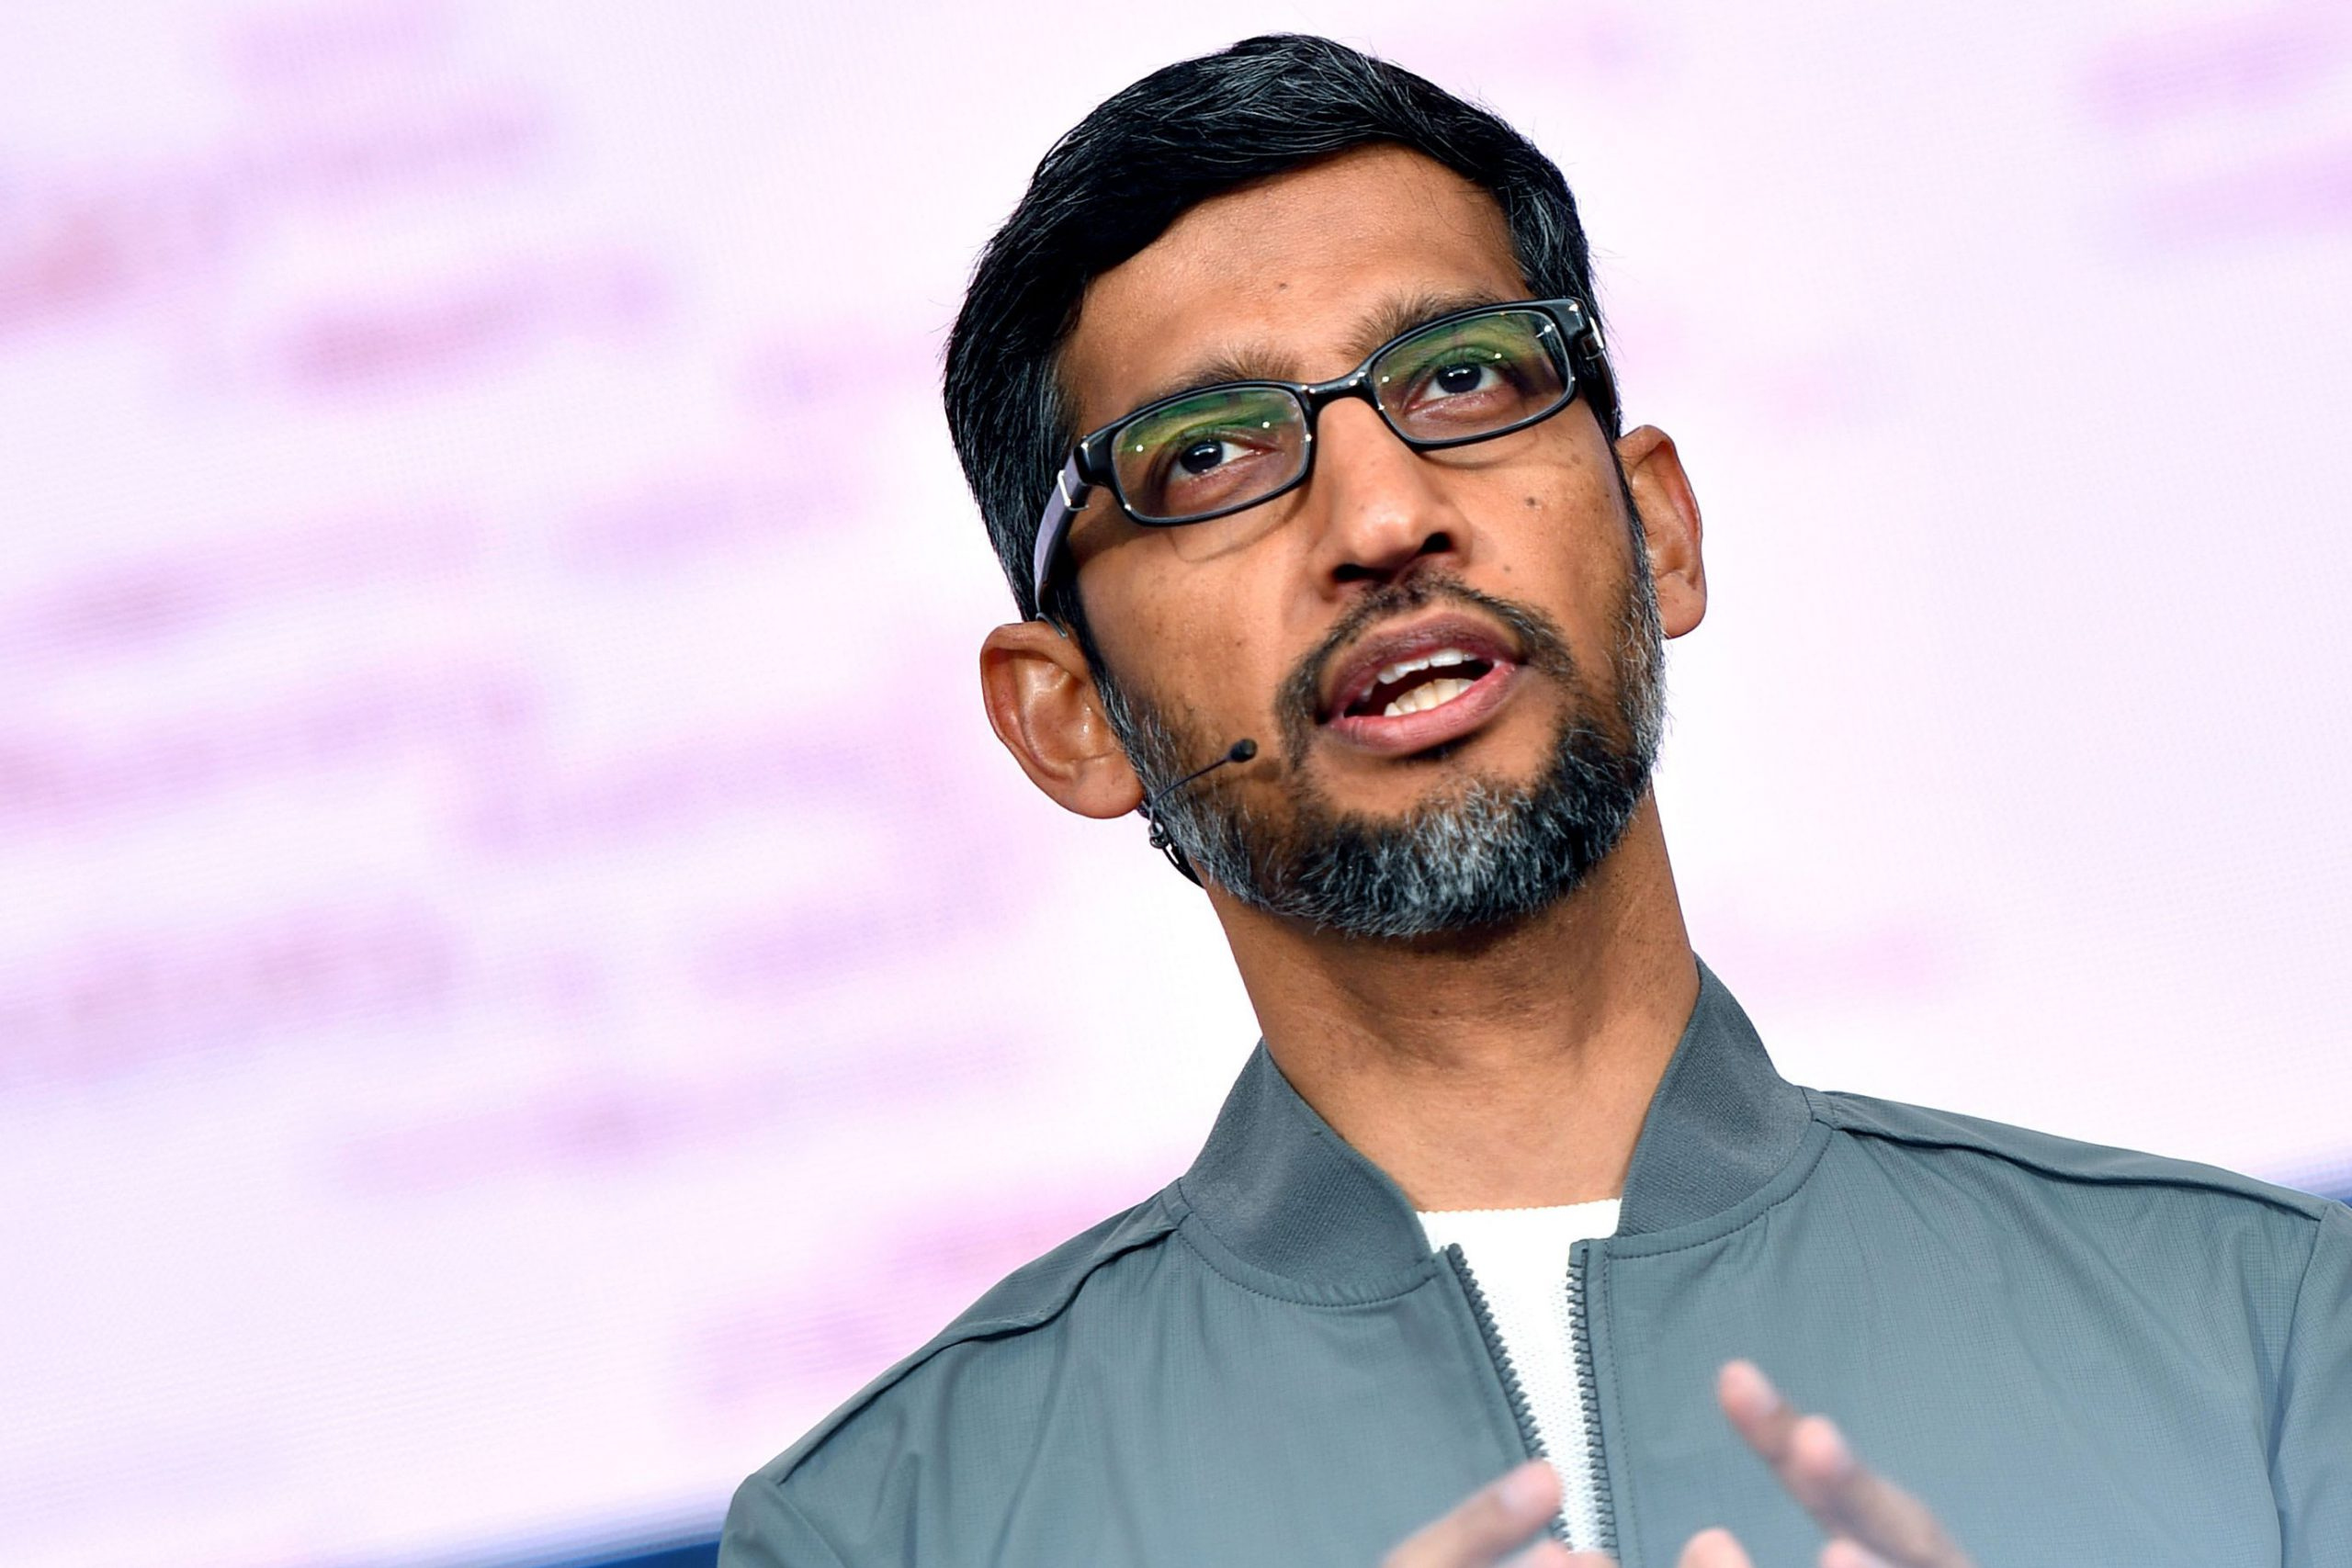 New Alphabet CEO Sundar Pichai hints at greater discipline and outside investors for long-term bets